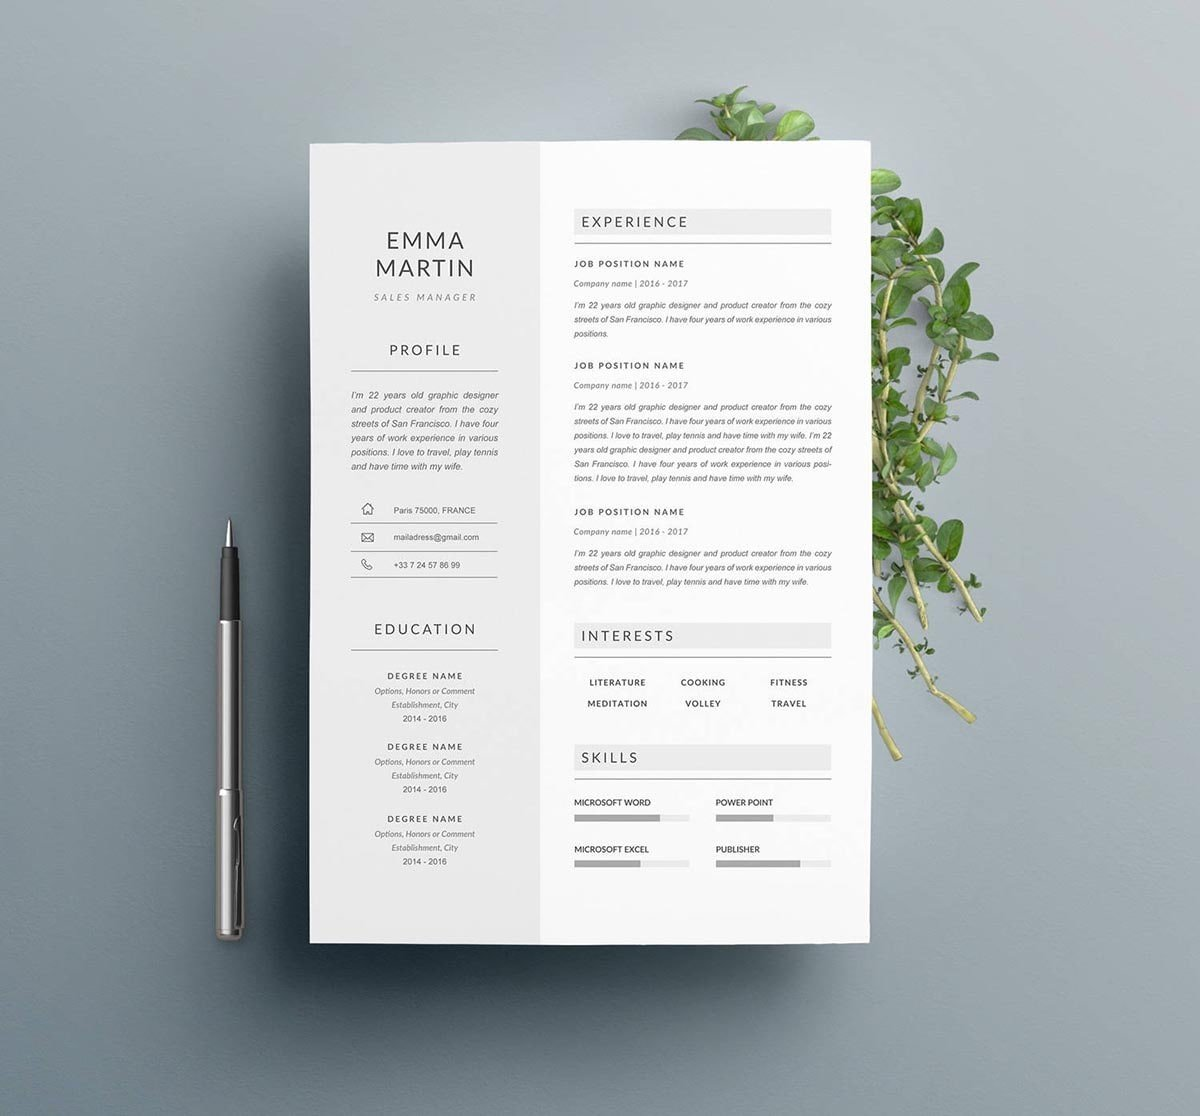 clean minimalist resume templates sleek design using excel objective portion of examples Resume Resume Minimalist Design